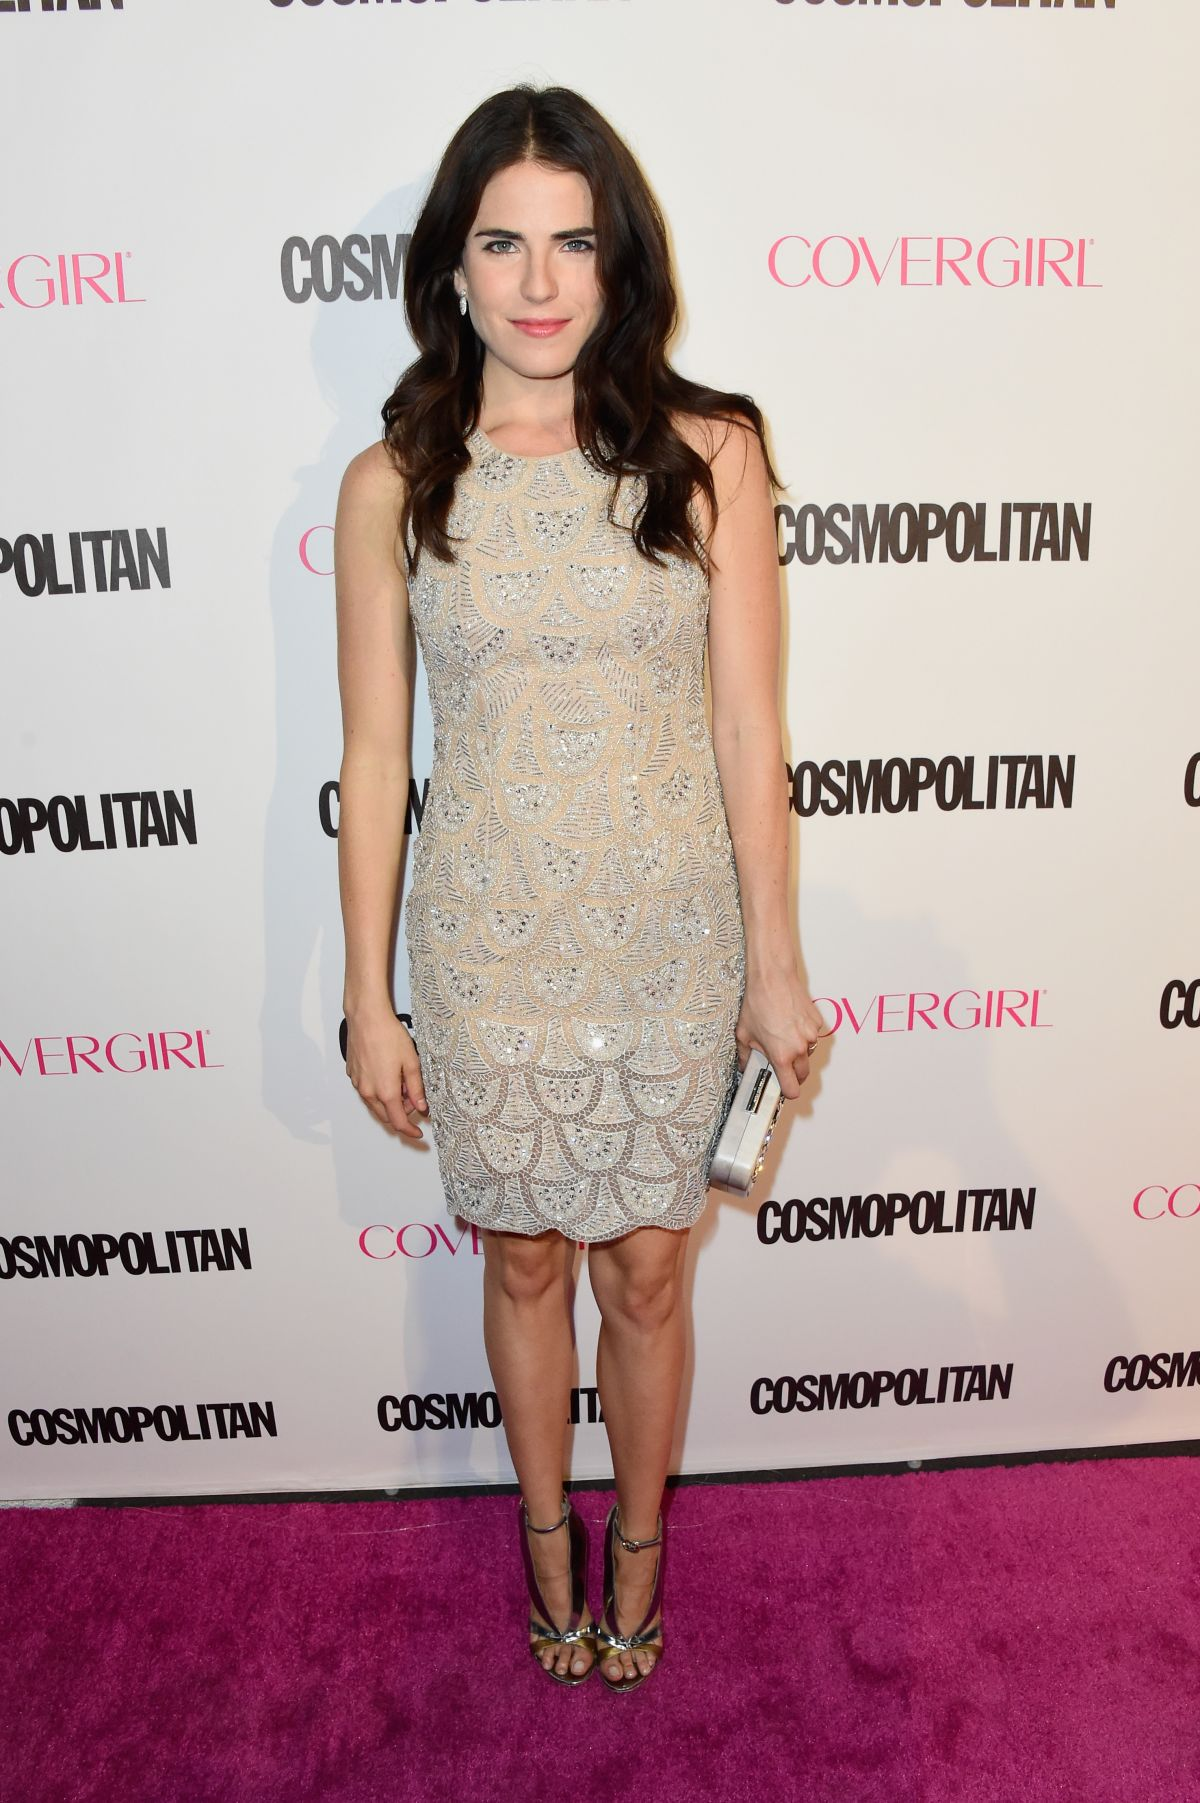 KARLA SOUZA at Cosmopolitan's 50th Birthday Celebration in West Hollywood 10/12/2015